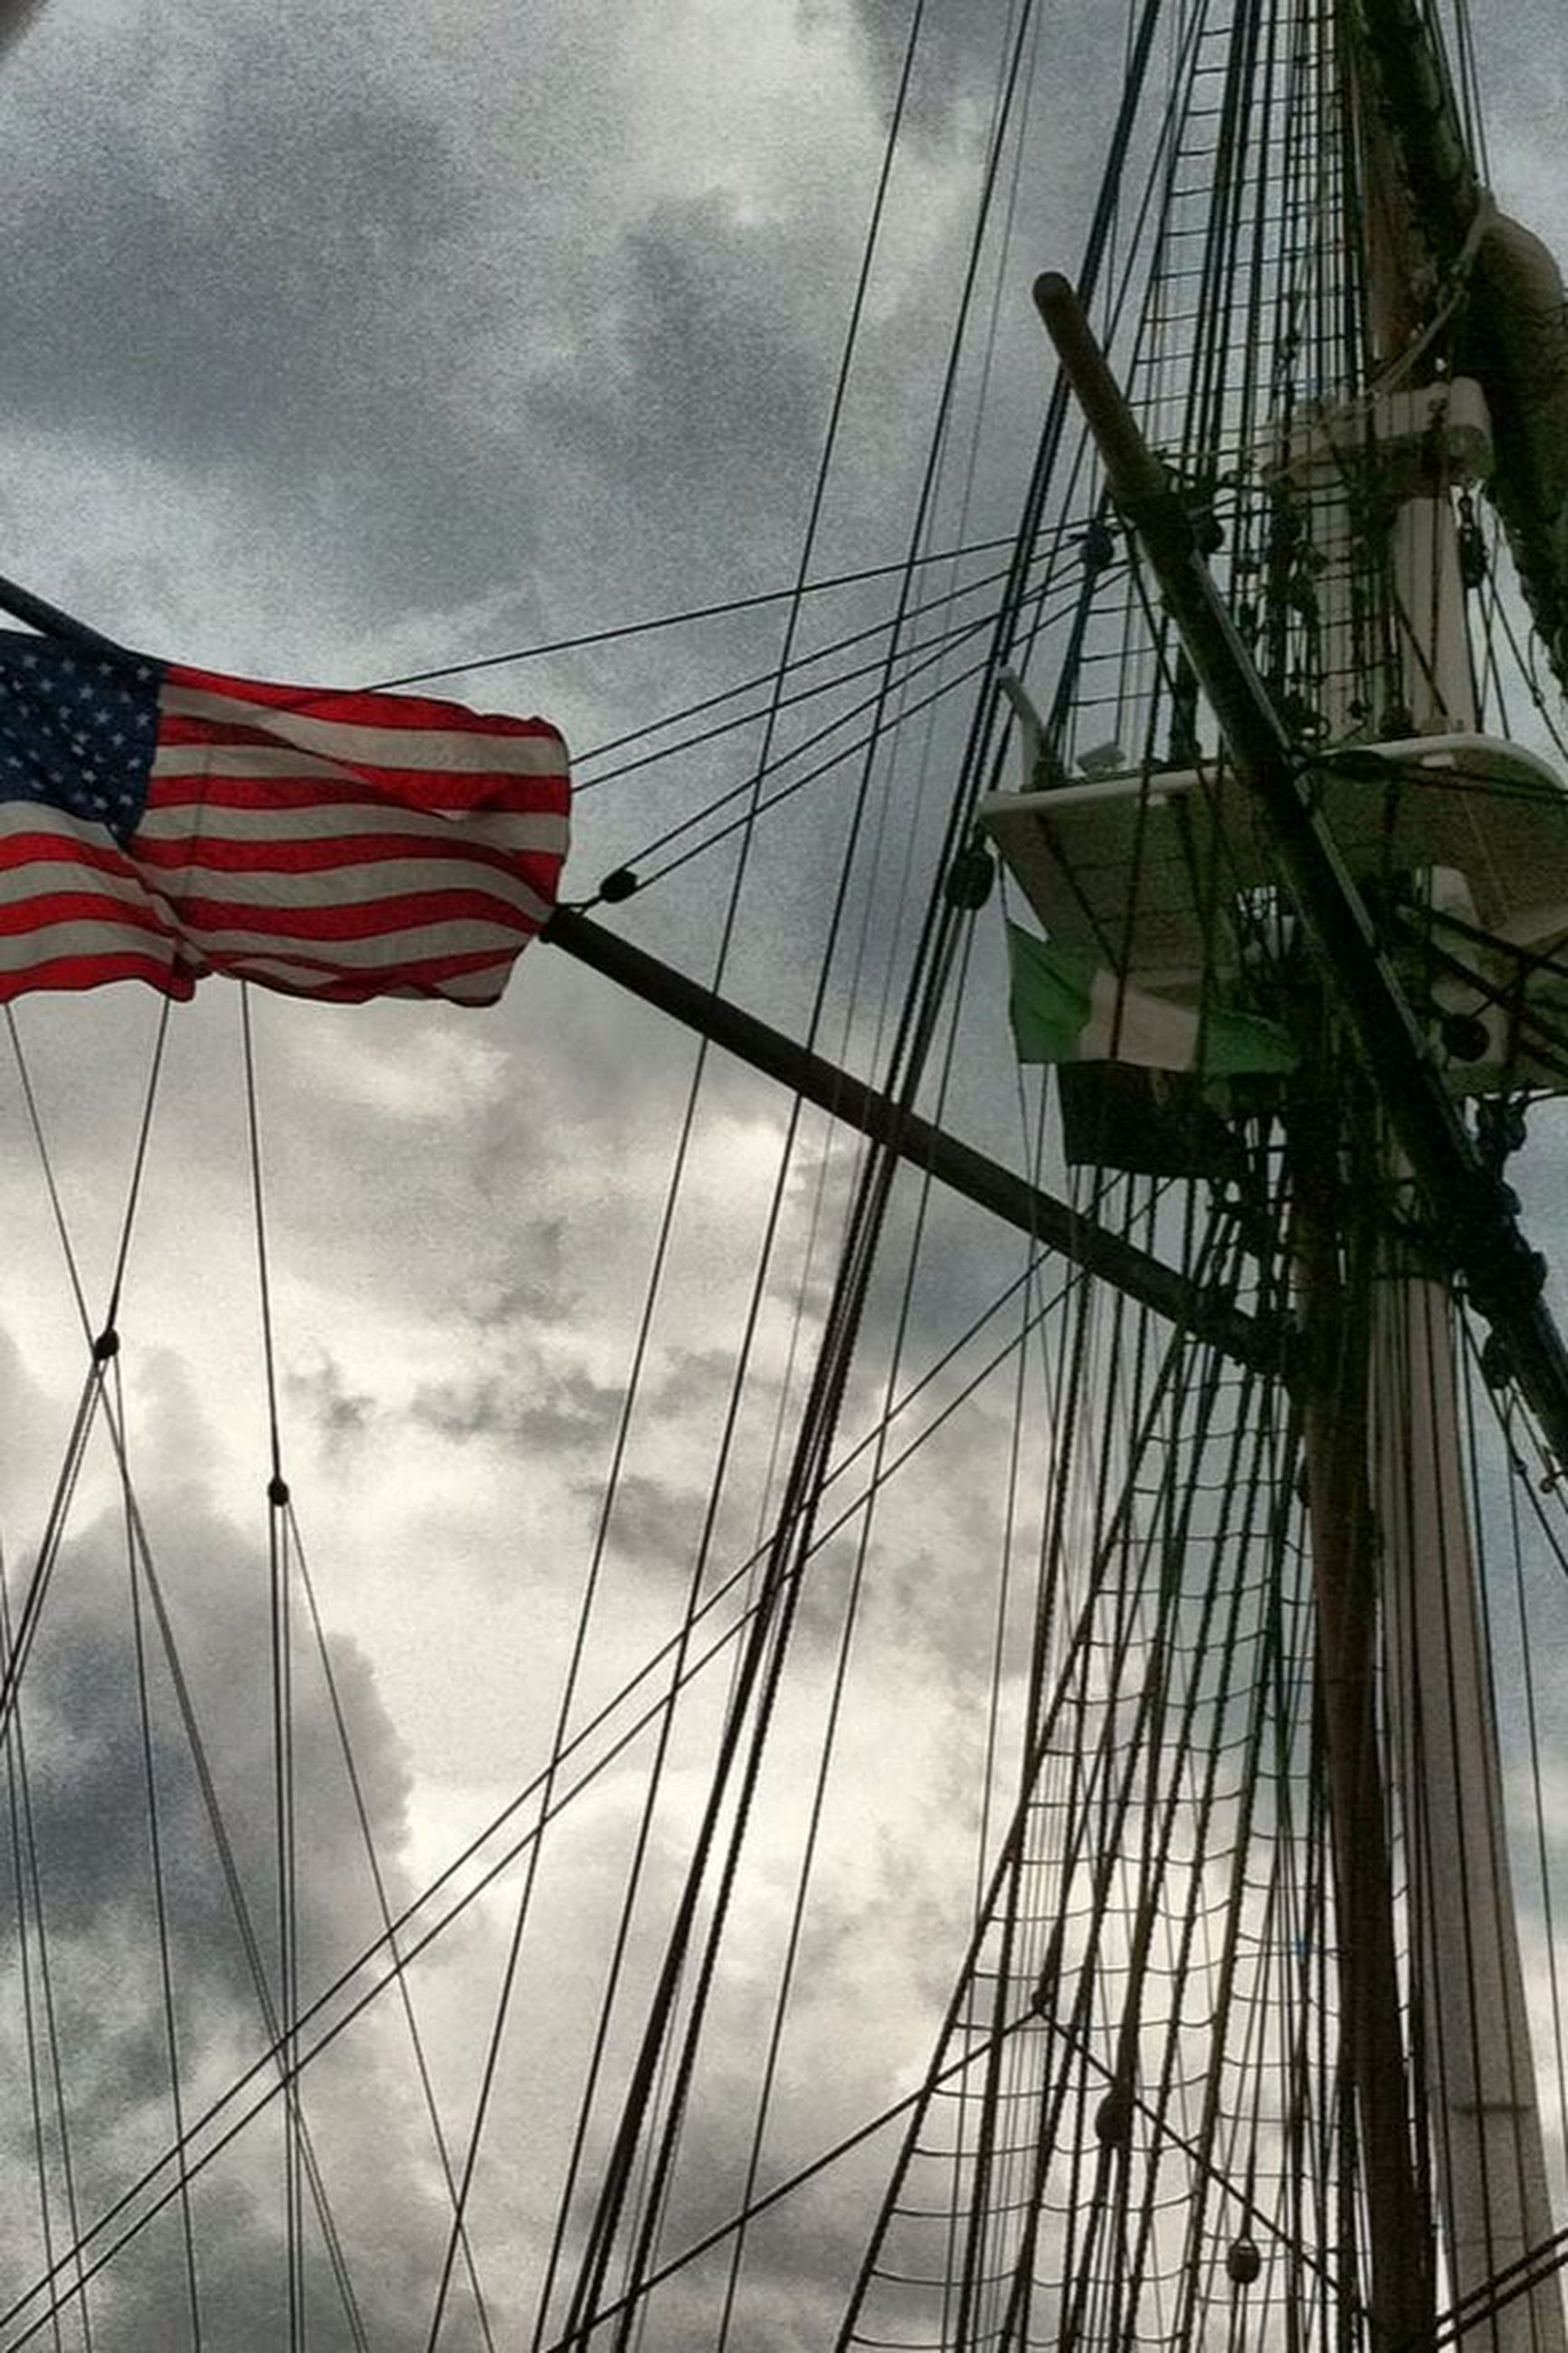 low angle view, sky, cloud - sky, flag, built structure, architecture, american flag, identity, cloudy, patriotism, building exterior, national flag, cloud, day, mast, wind, outdoors, rope, no people, nautical vessel